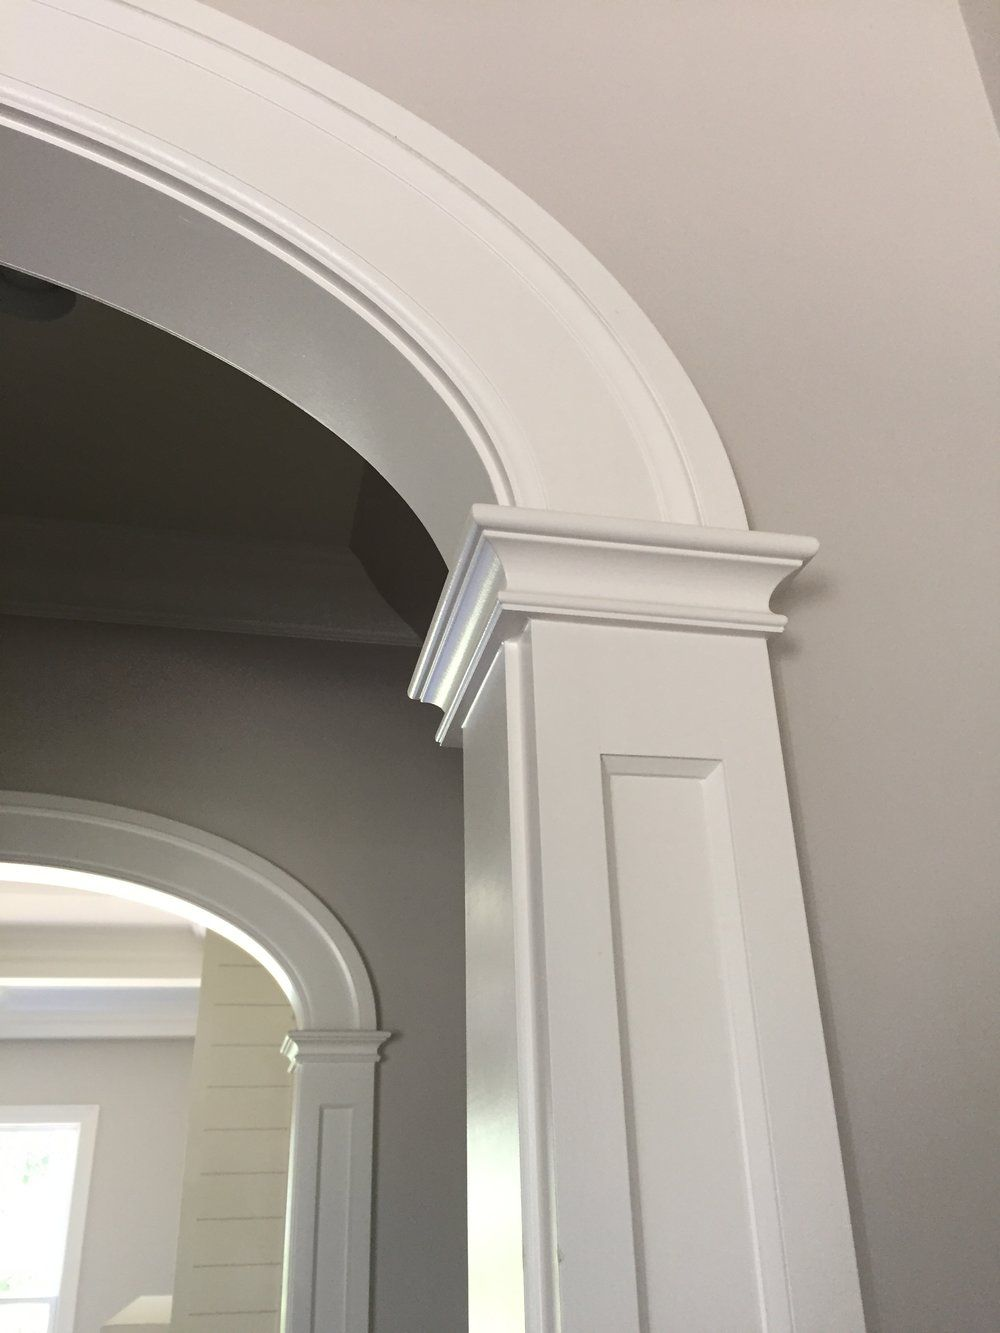 Farmhouse Style Arched Opening Frame And Flat Panel Column Detail 5 Wide Casing Detail Arched Interior Doors Moldings And Trim Archway Molding